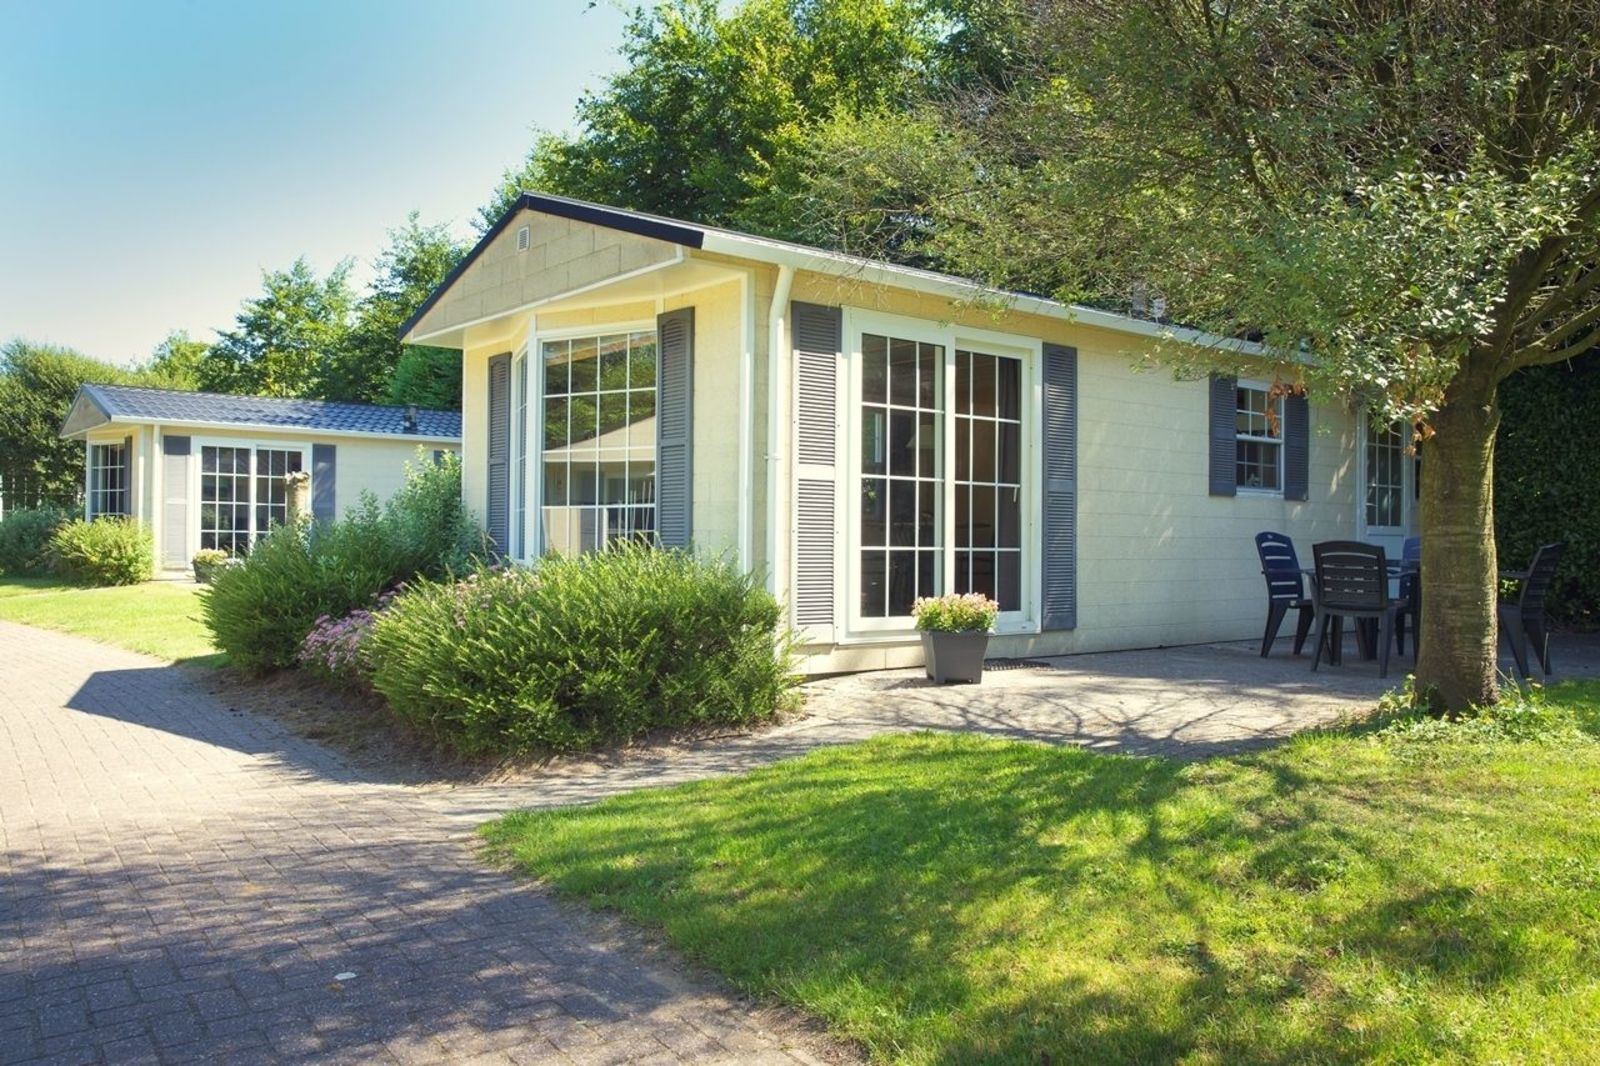 Bungalette 6 persons basic | 2 Bedrooms